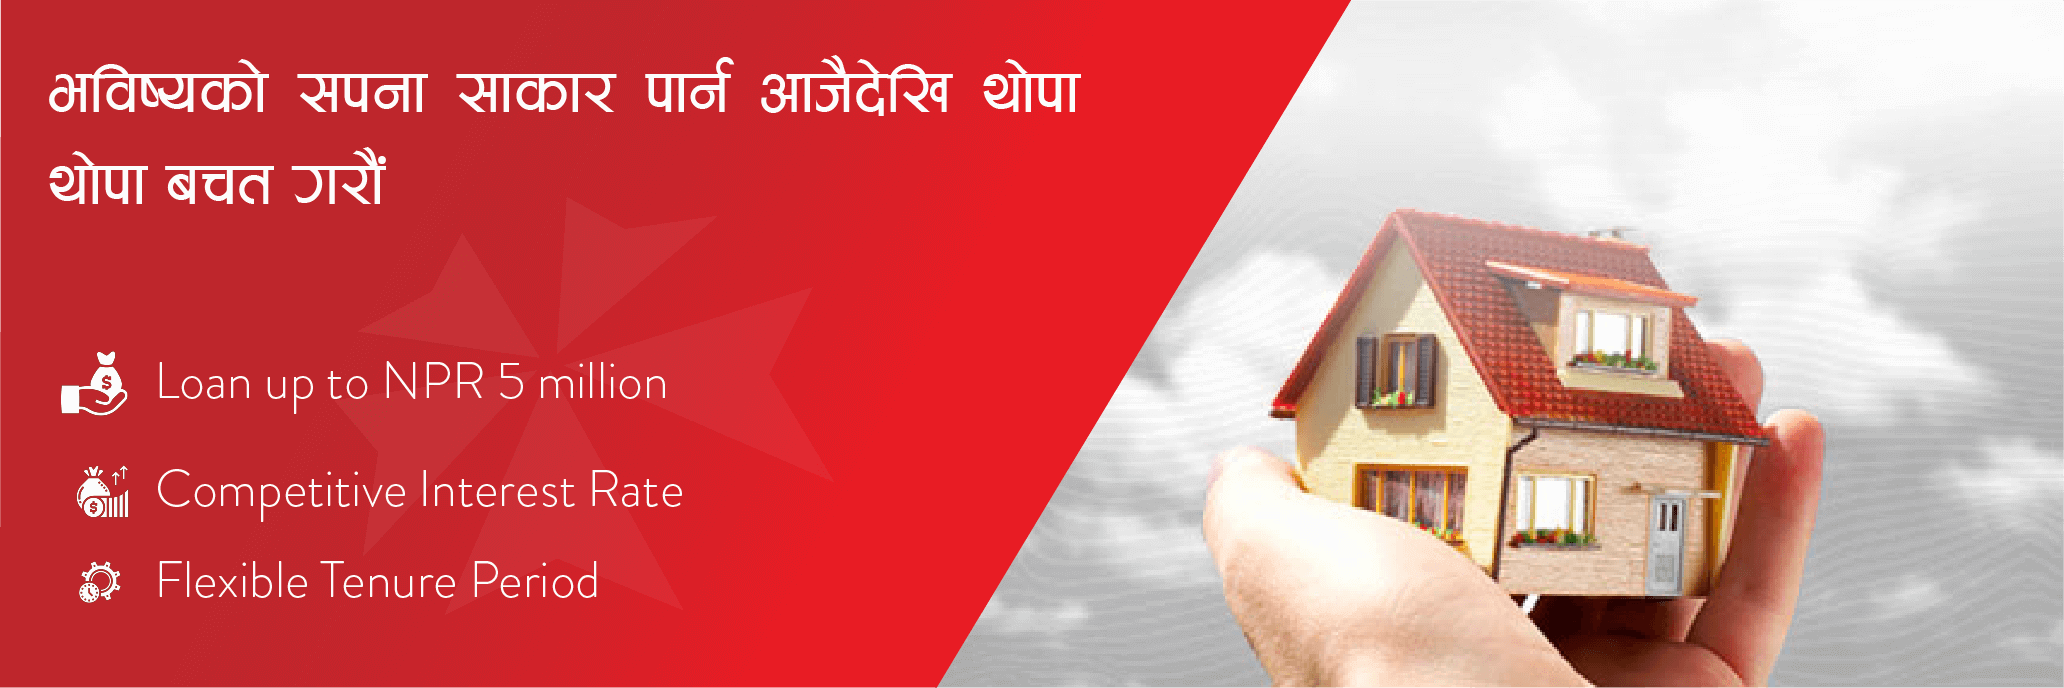 Home Loan against mortgaged property